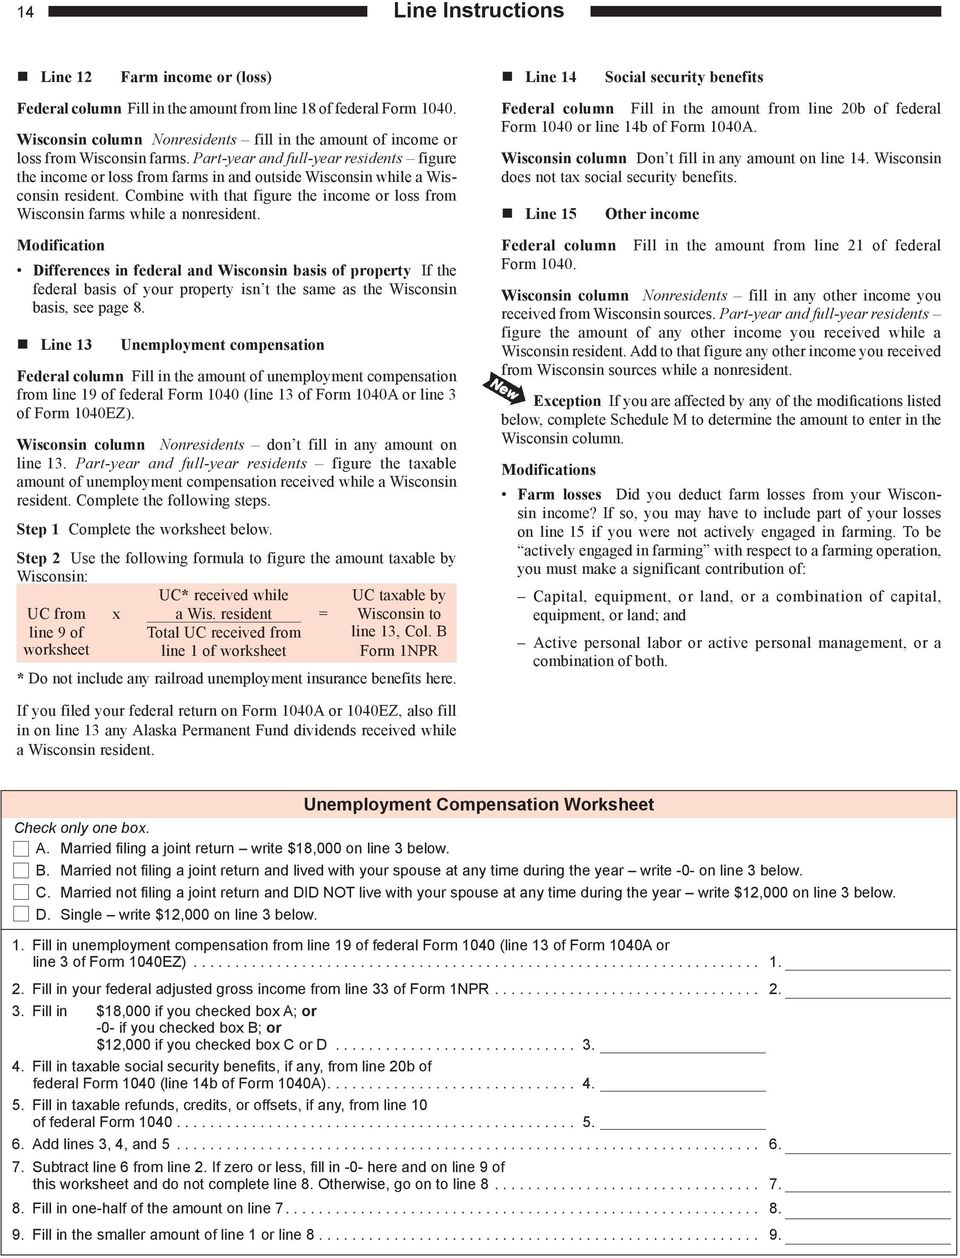 2017 i-152 form 1npr instructions wisconsin income tax for.